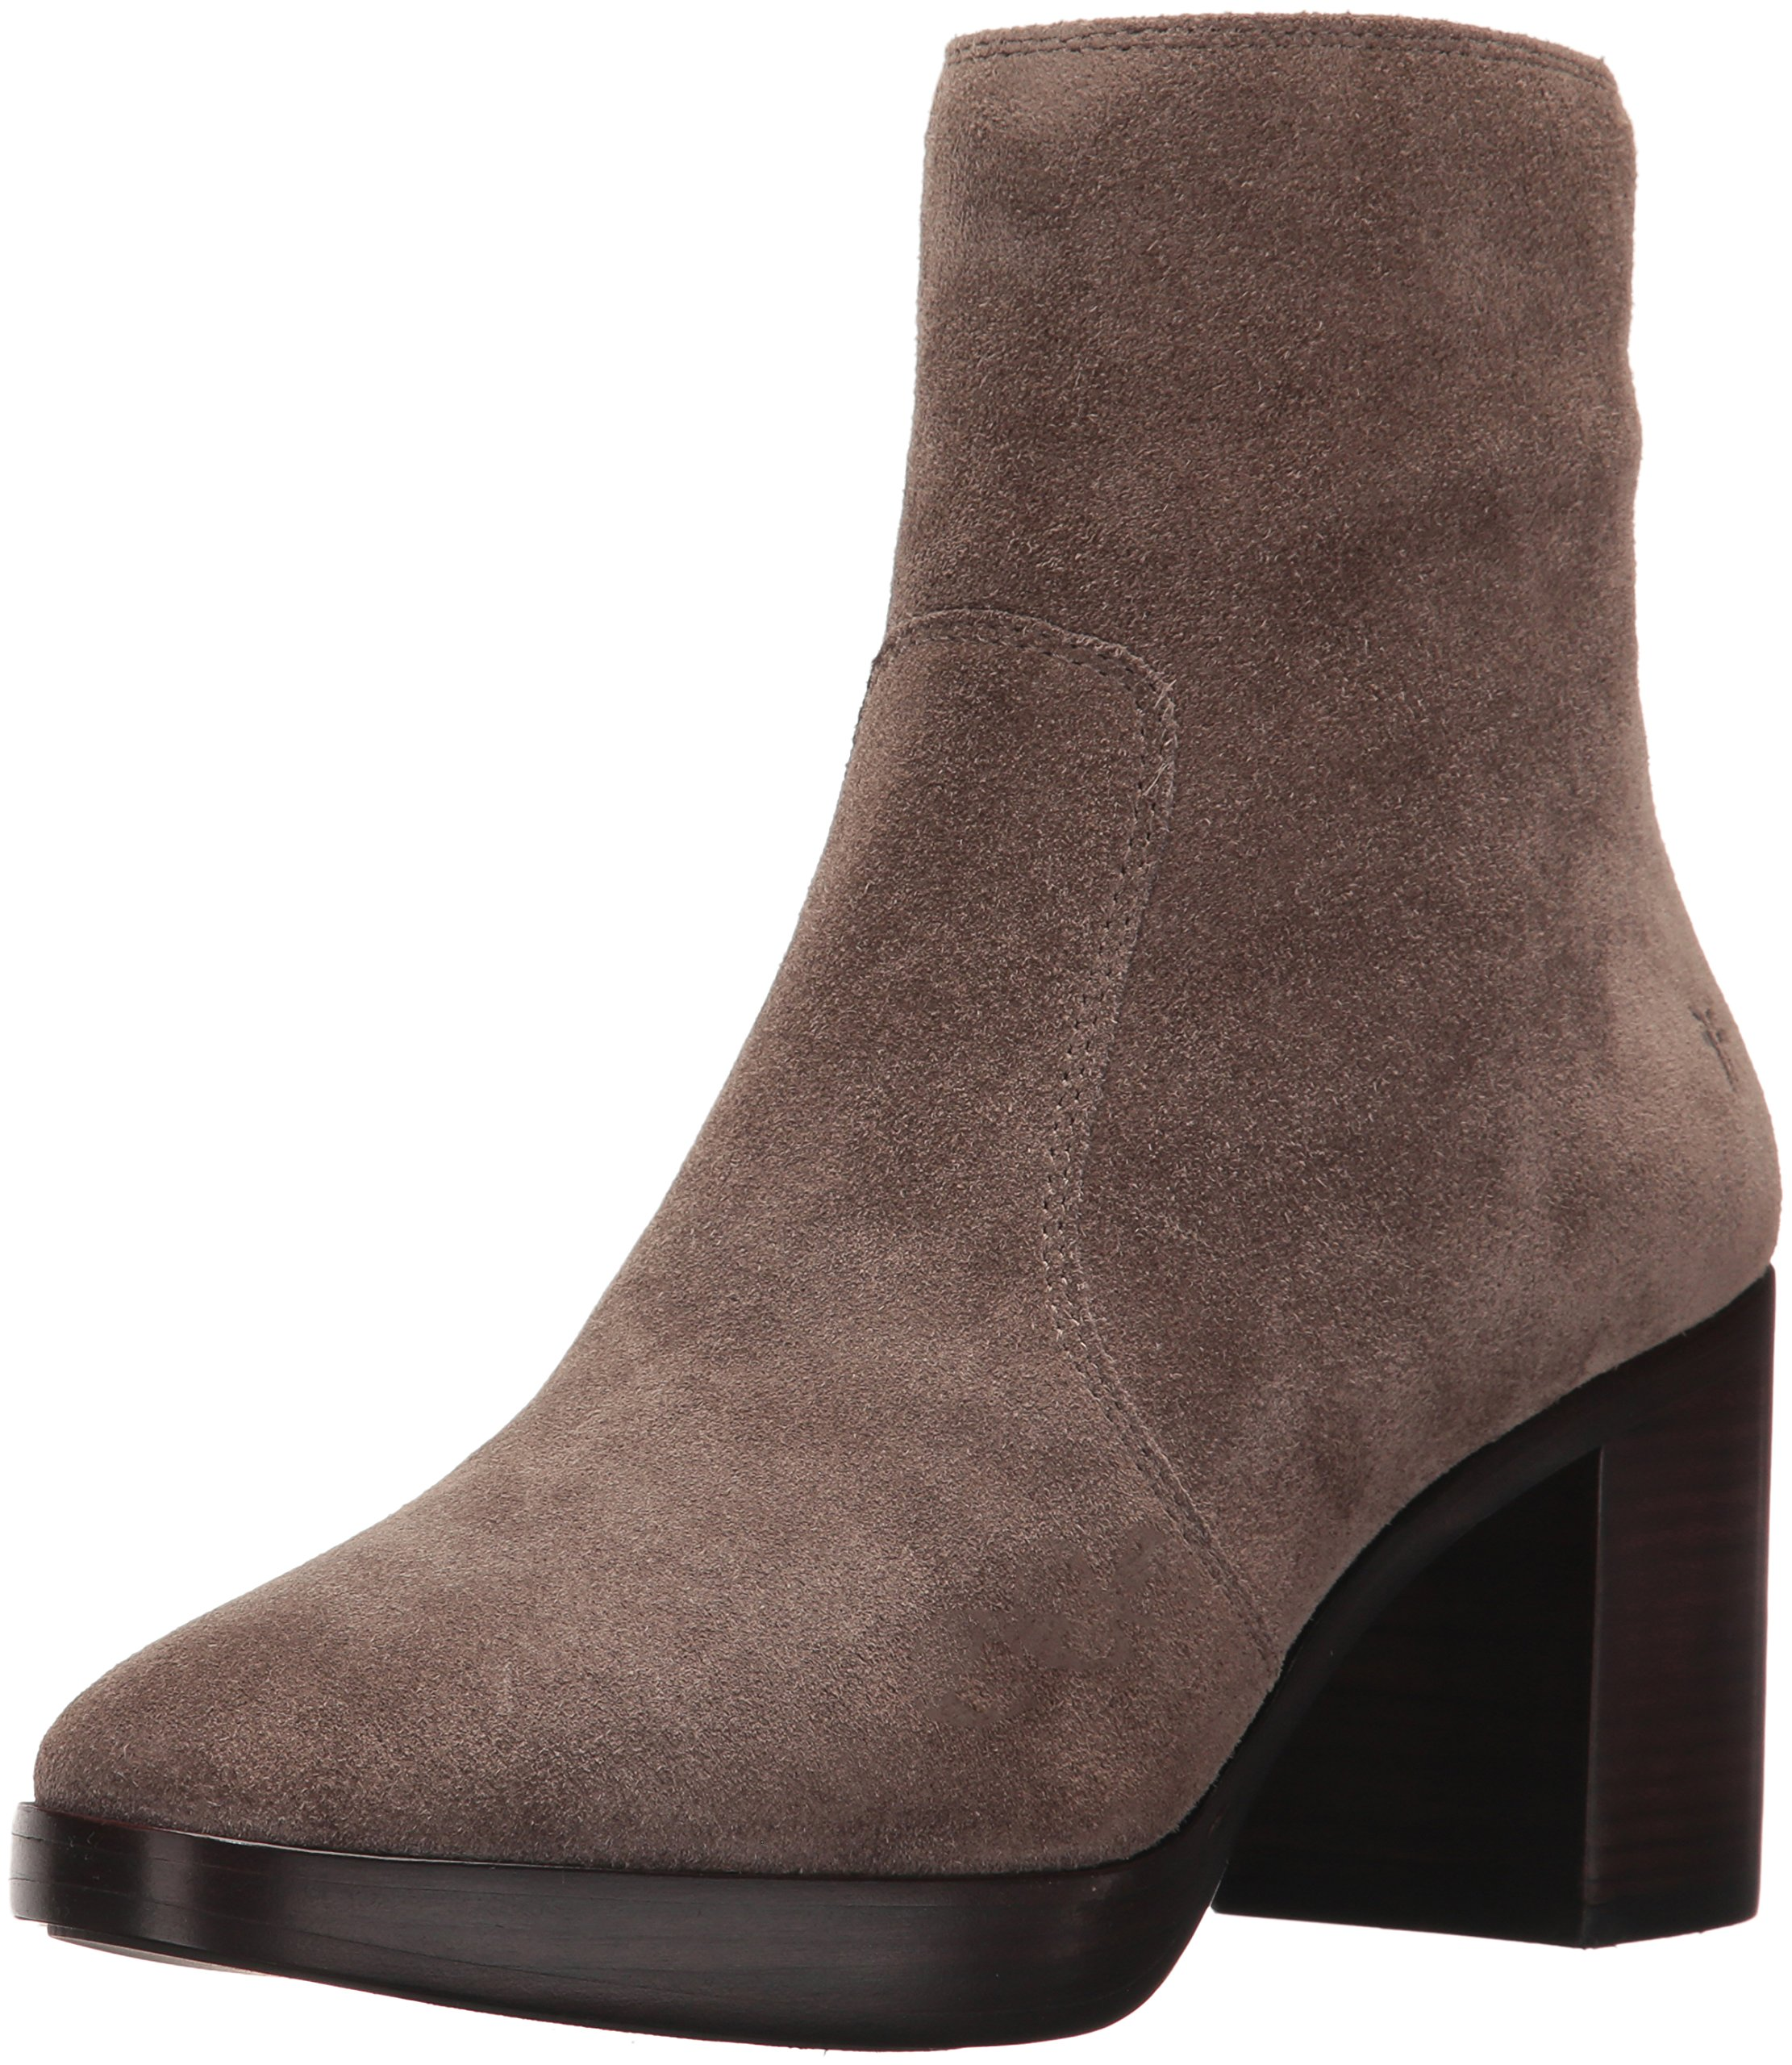 FRYE Women's Joan Campus Short Boot, Elephant Soft Oiled Suede, 8 M US